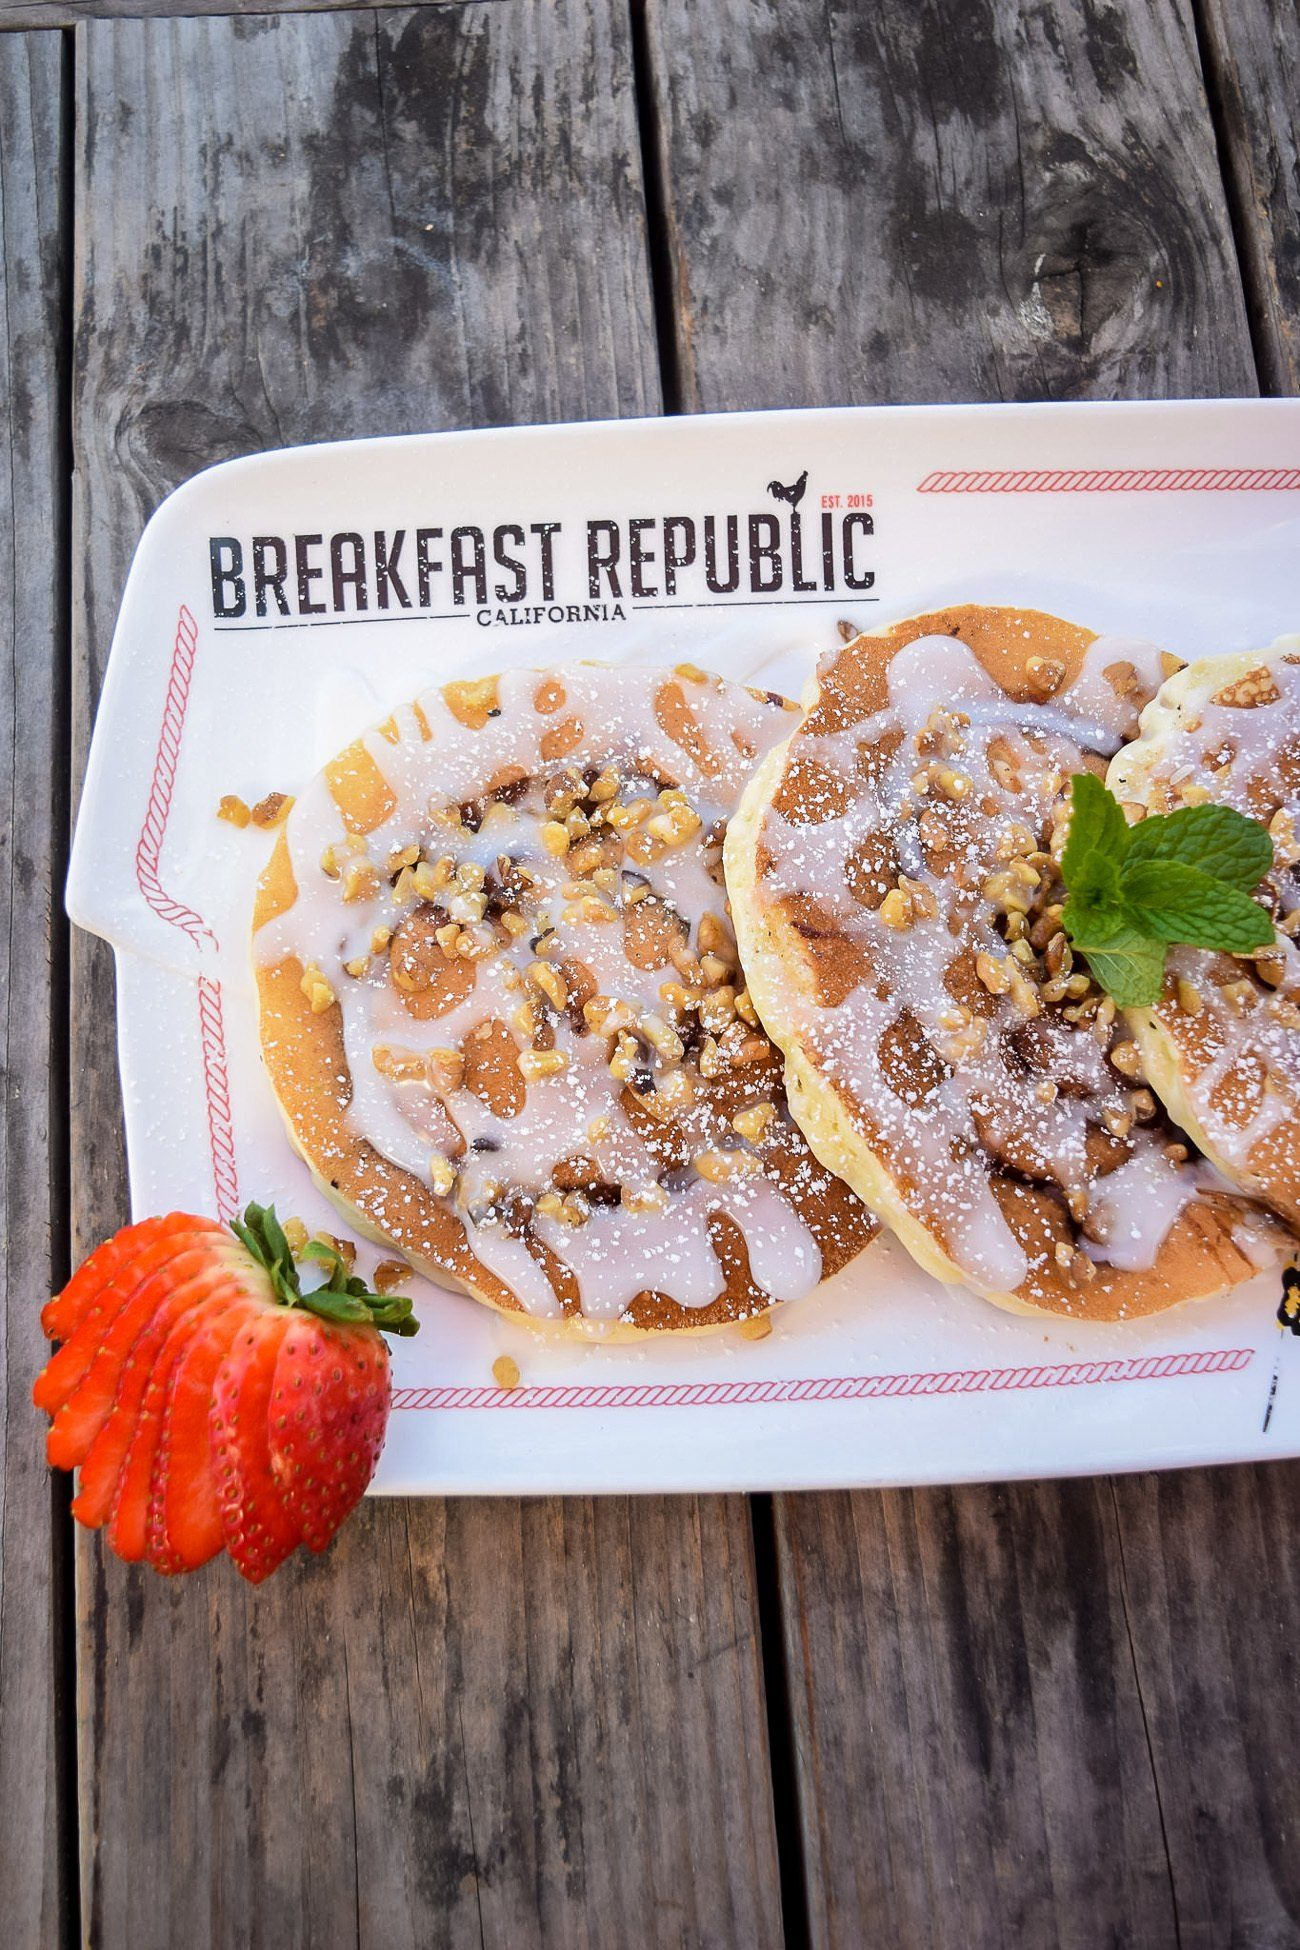 Get the recipe for San Diego's Breakfast Republic restaurant's most popular dish: Cinnamon roll pancakes.